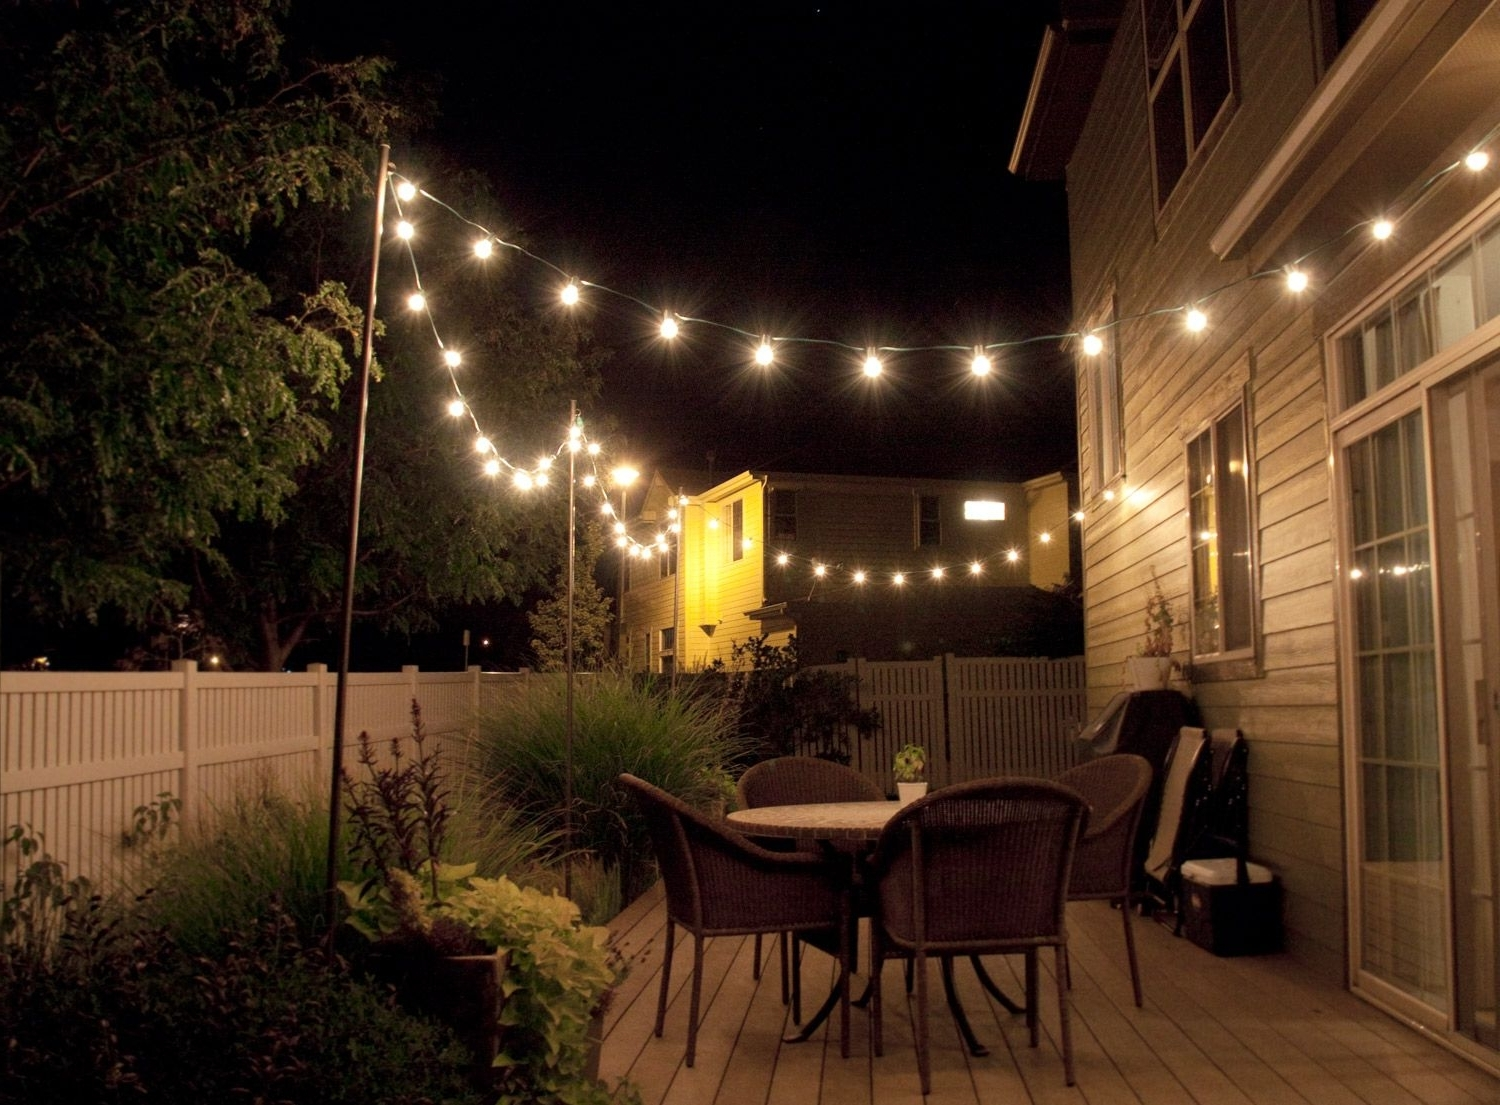 How To Make Inexpensive Poles To Hang String Lights On – Café Style Throughout Popular Hanging Outdoor Lights (Gallery 6 of 20)